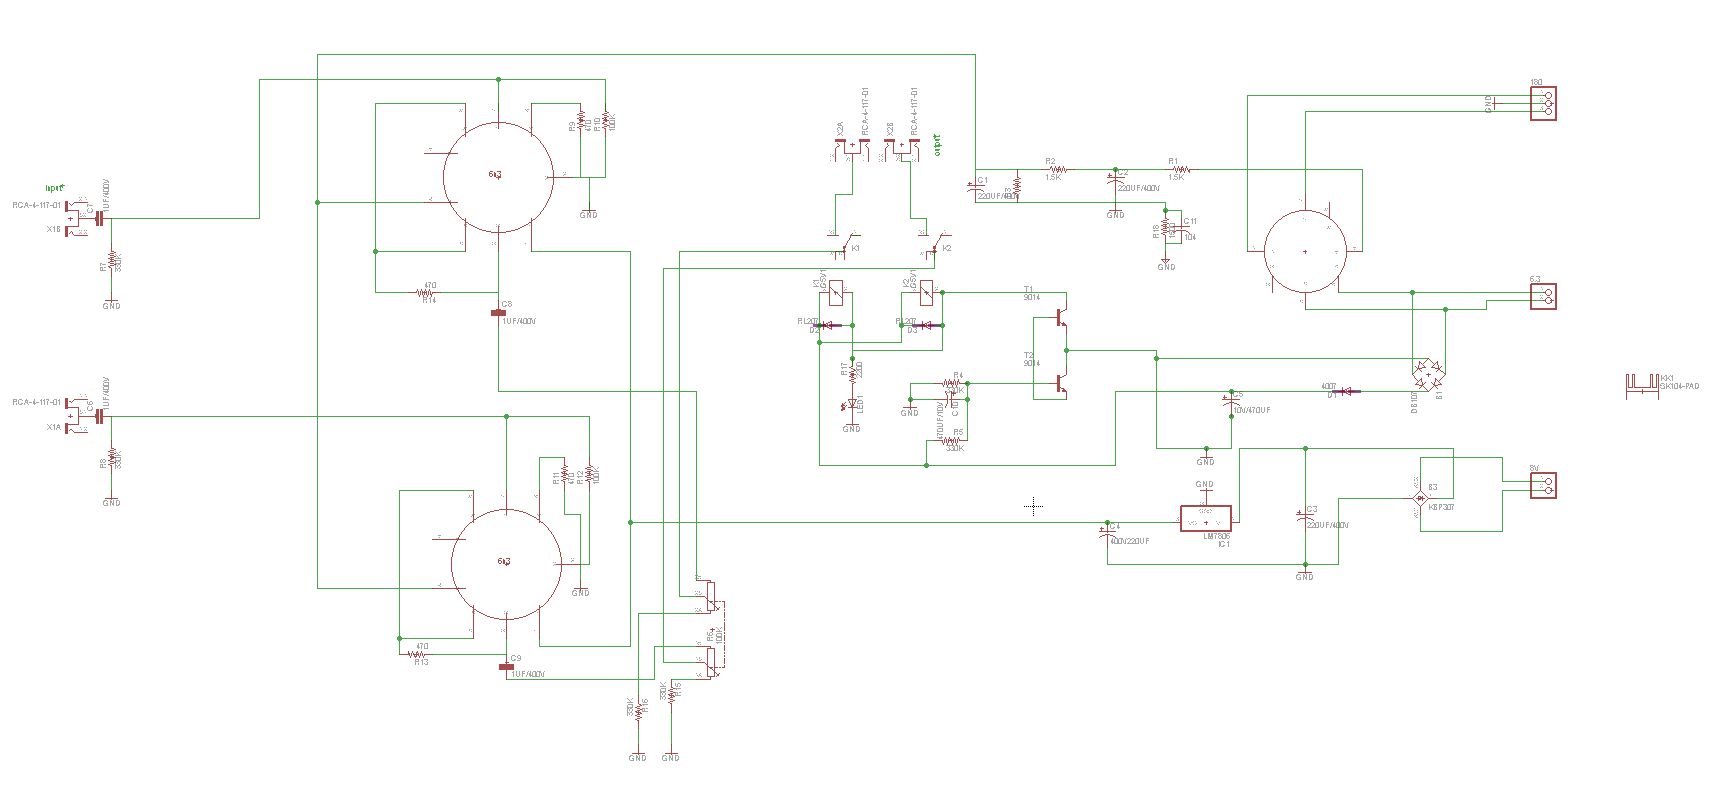 Ece477 Course Documents Numeric Ups Circuit Diagram This Schematic Comes From The Provided Which Have A Lot Of Omission I Had To Do Some Reverse Engineering Make Up Broken Link